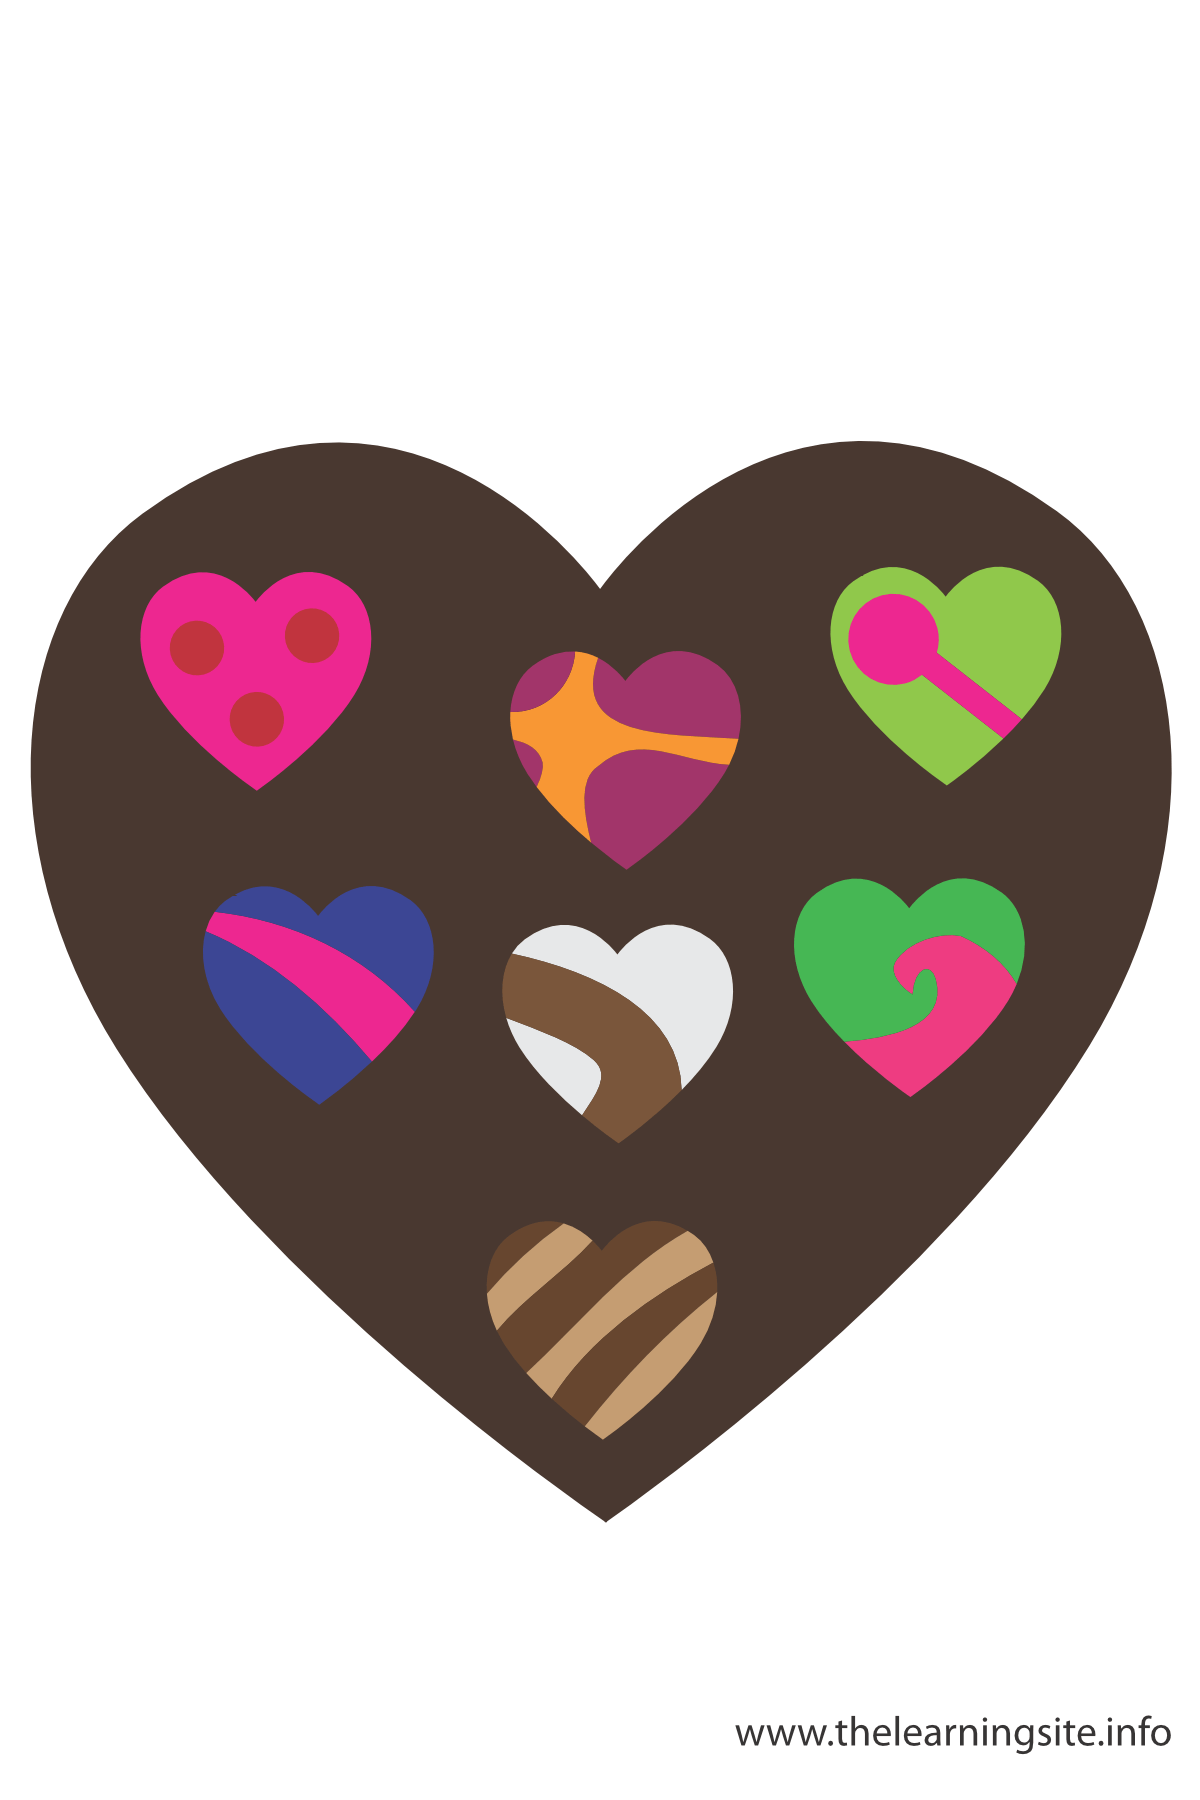 Chocolate Candy Hearts Flashcard The Learning Site